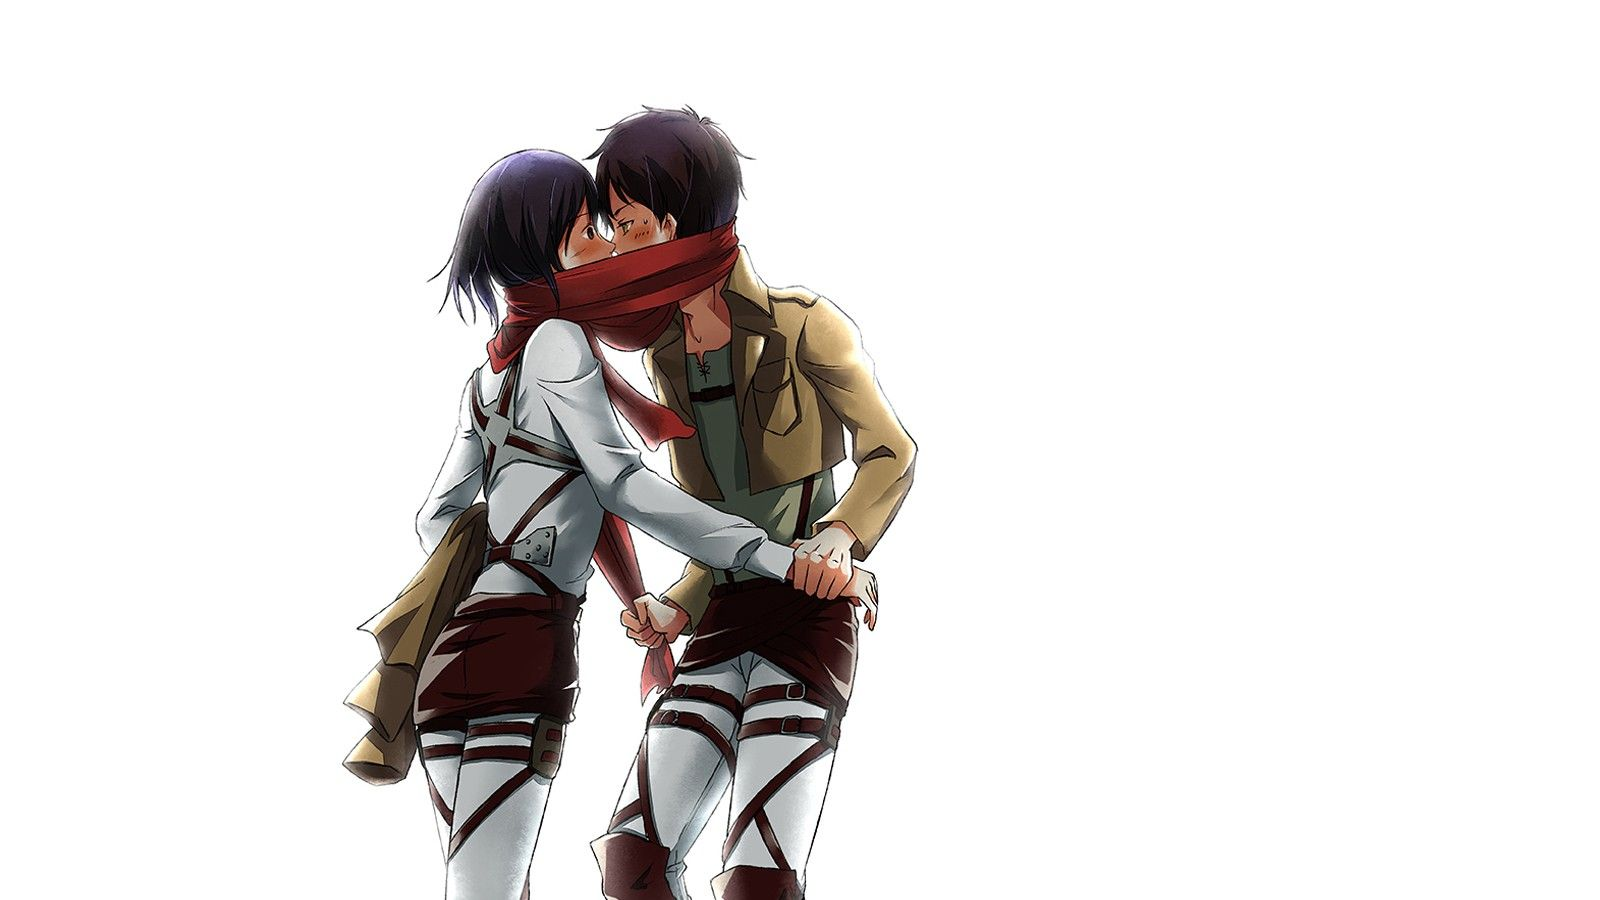 Mikasa Eren Kiss Photo Free Download Wallpapers Mikasa Eren And